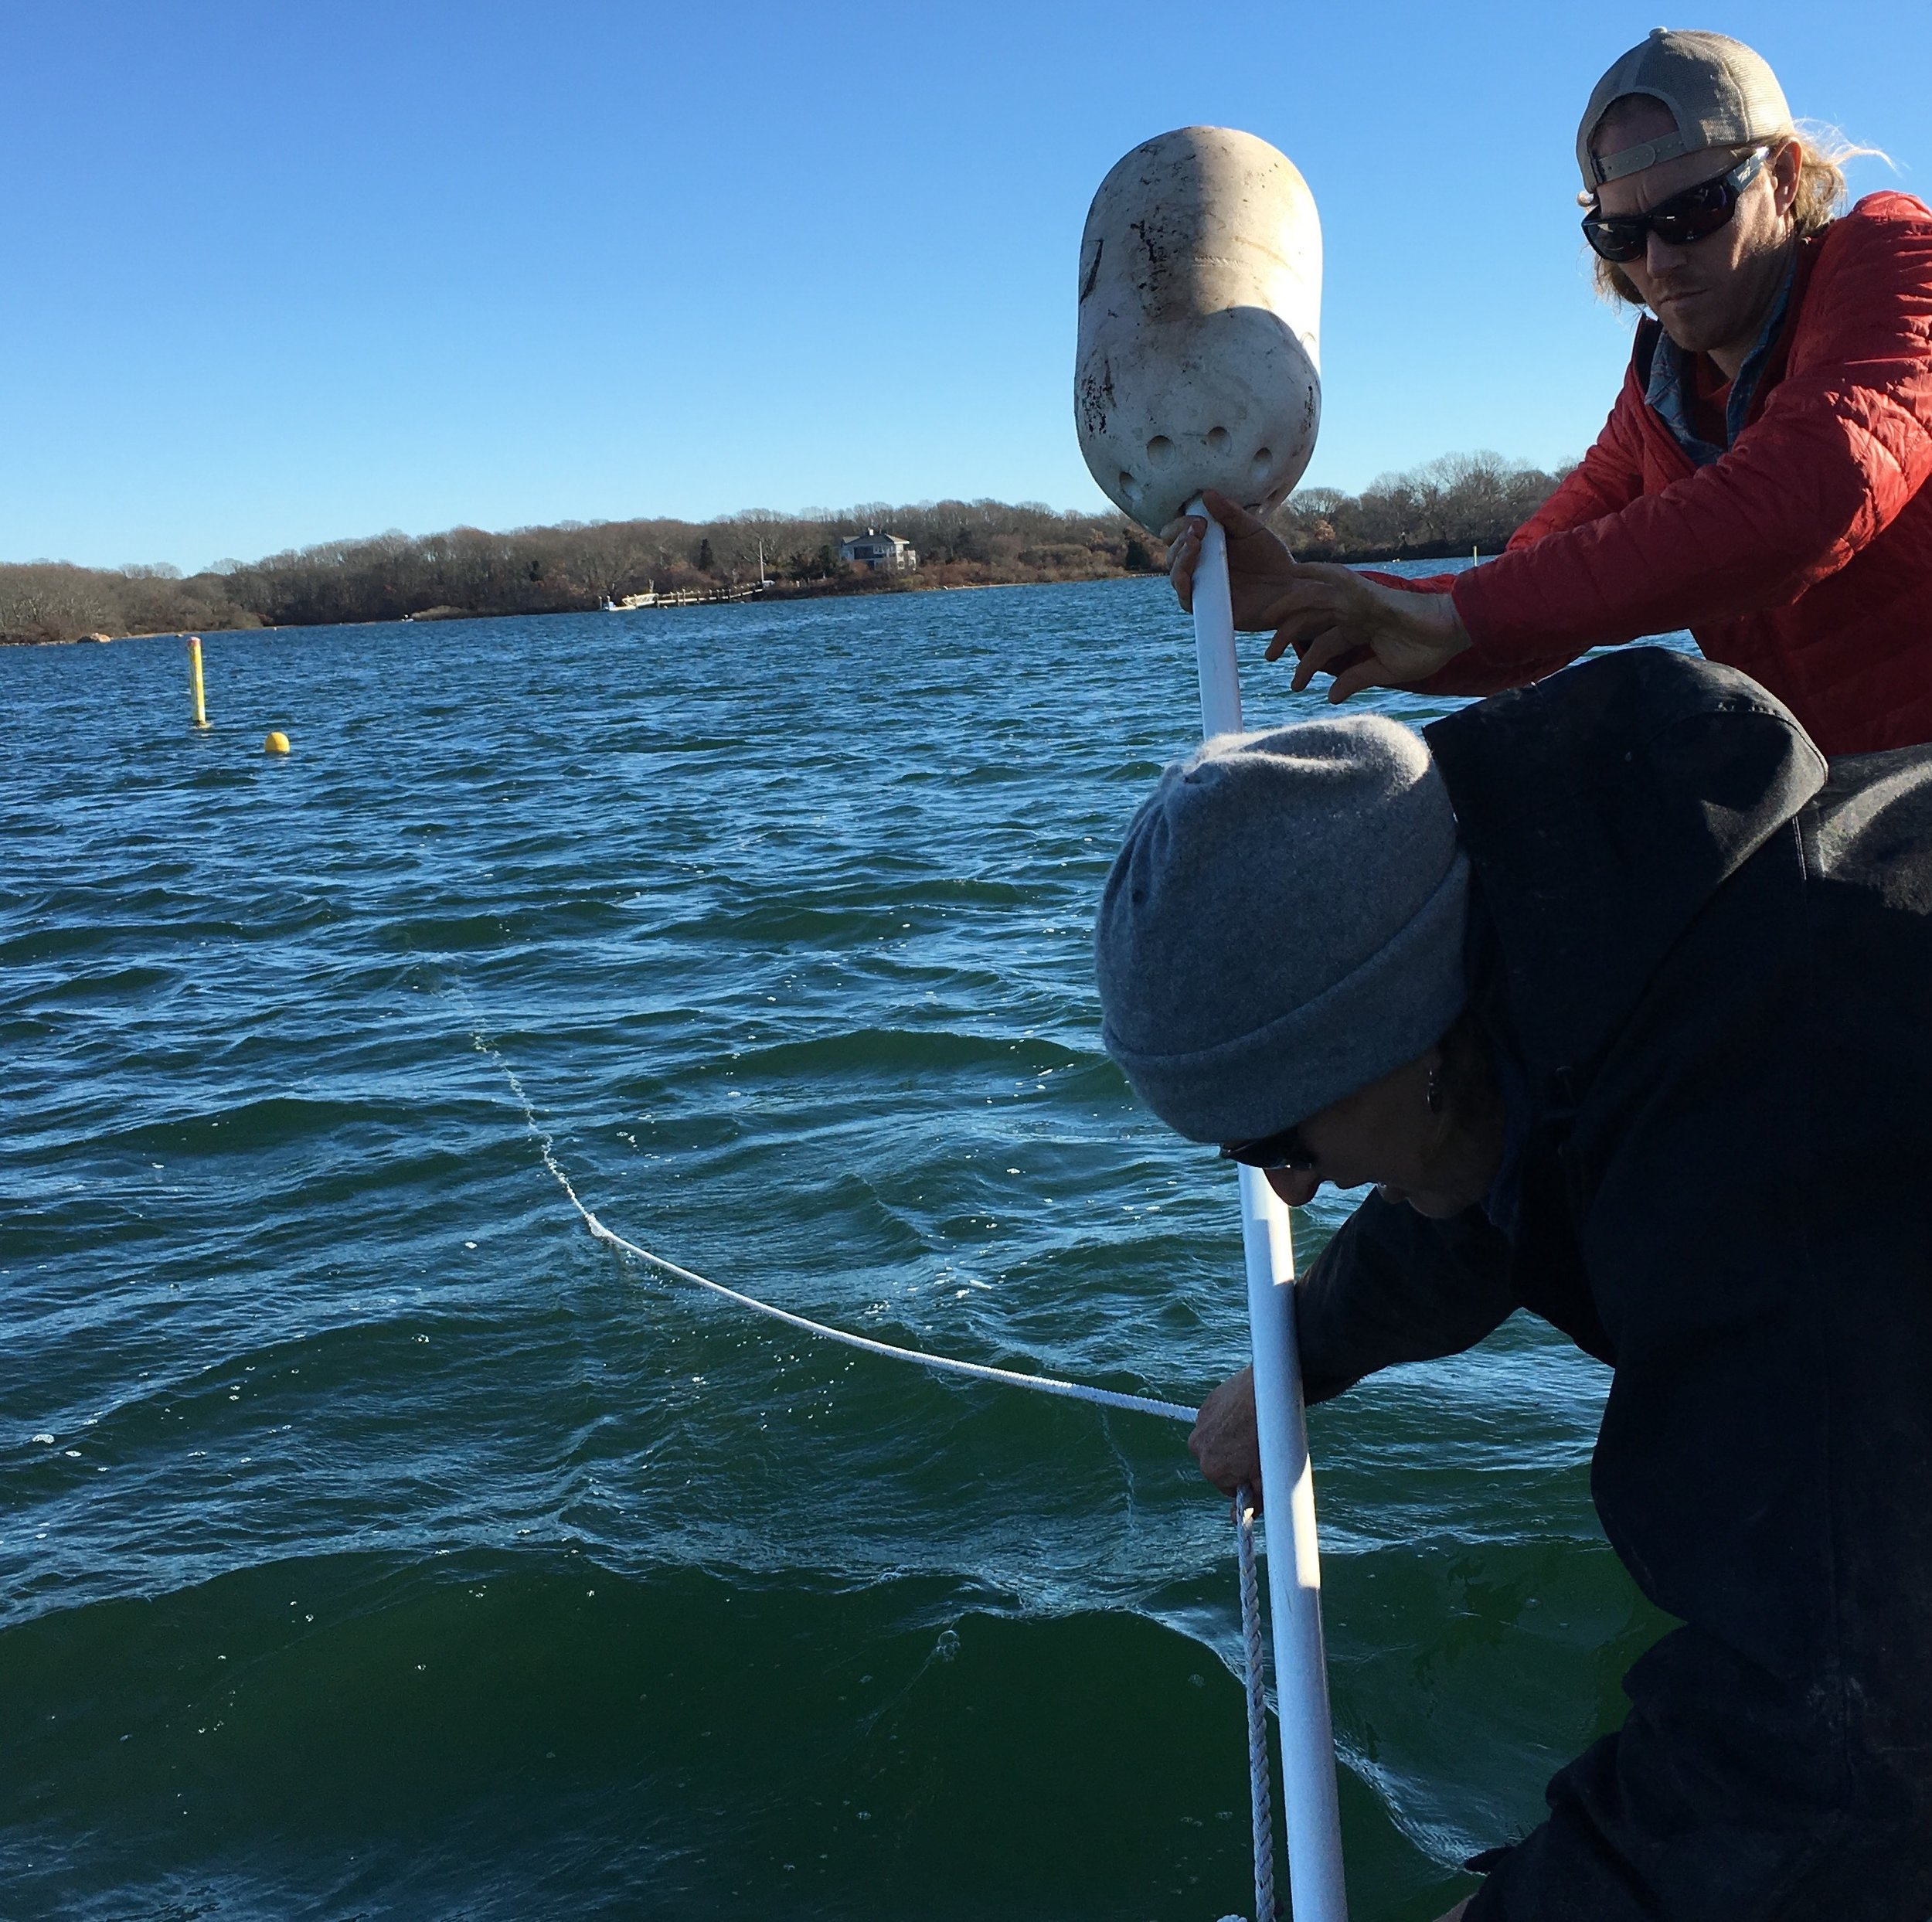 Austin helps deploy a long line for growing kelp with Cindy West of Cedar Island Oysters in Point Judith, Rhode Island.